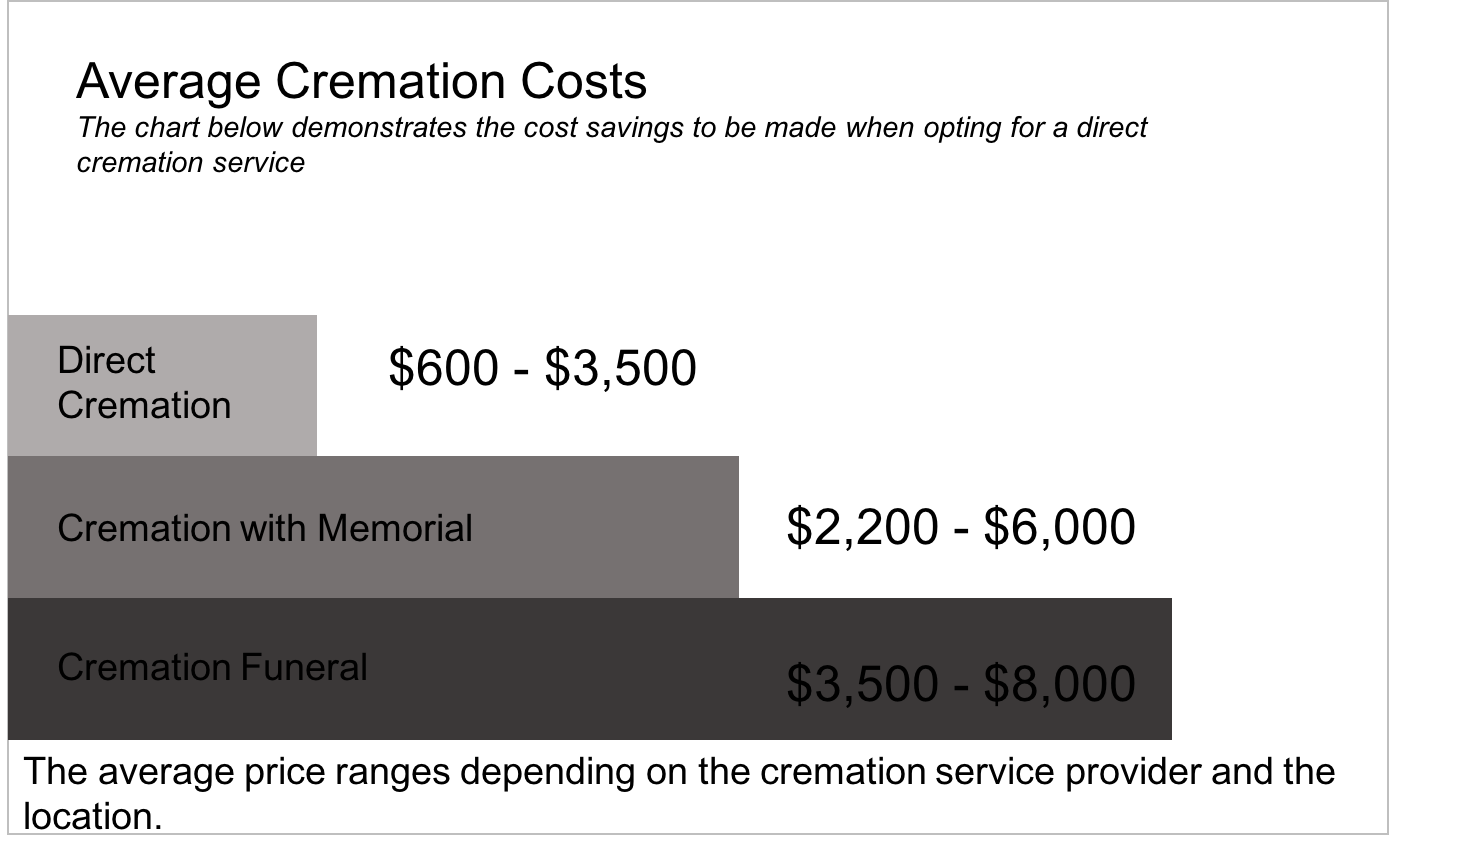 Average cremation costs 2018